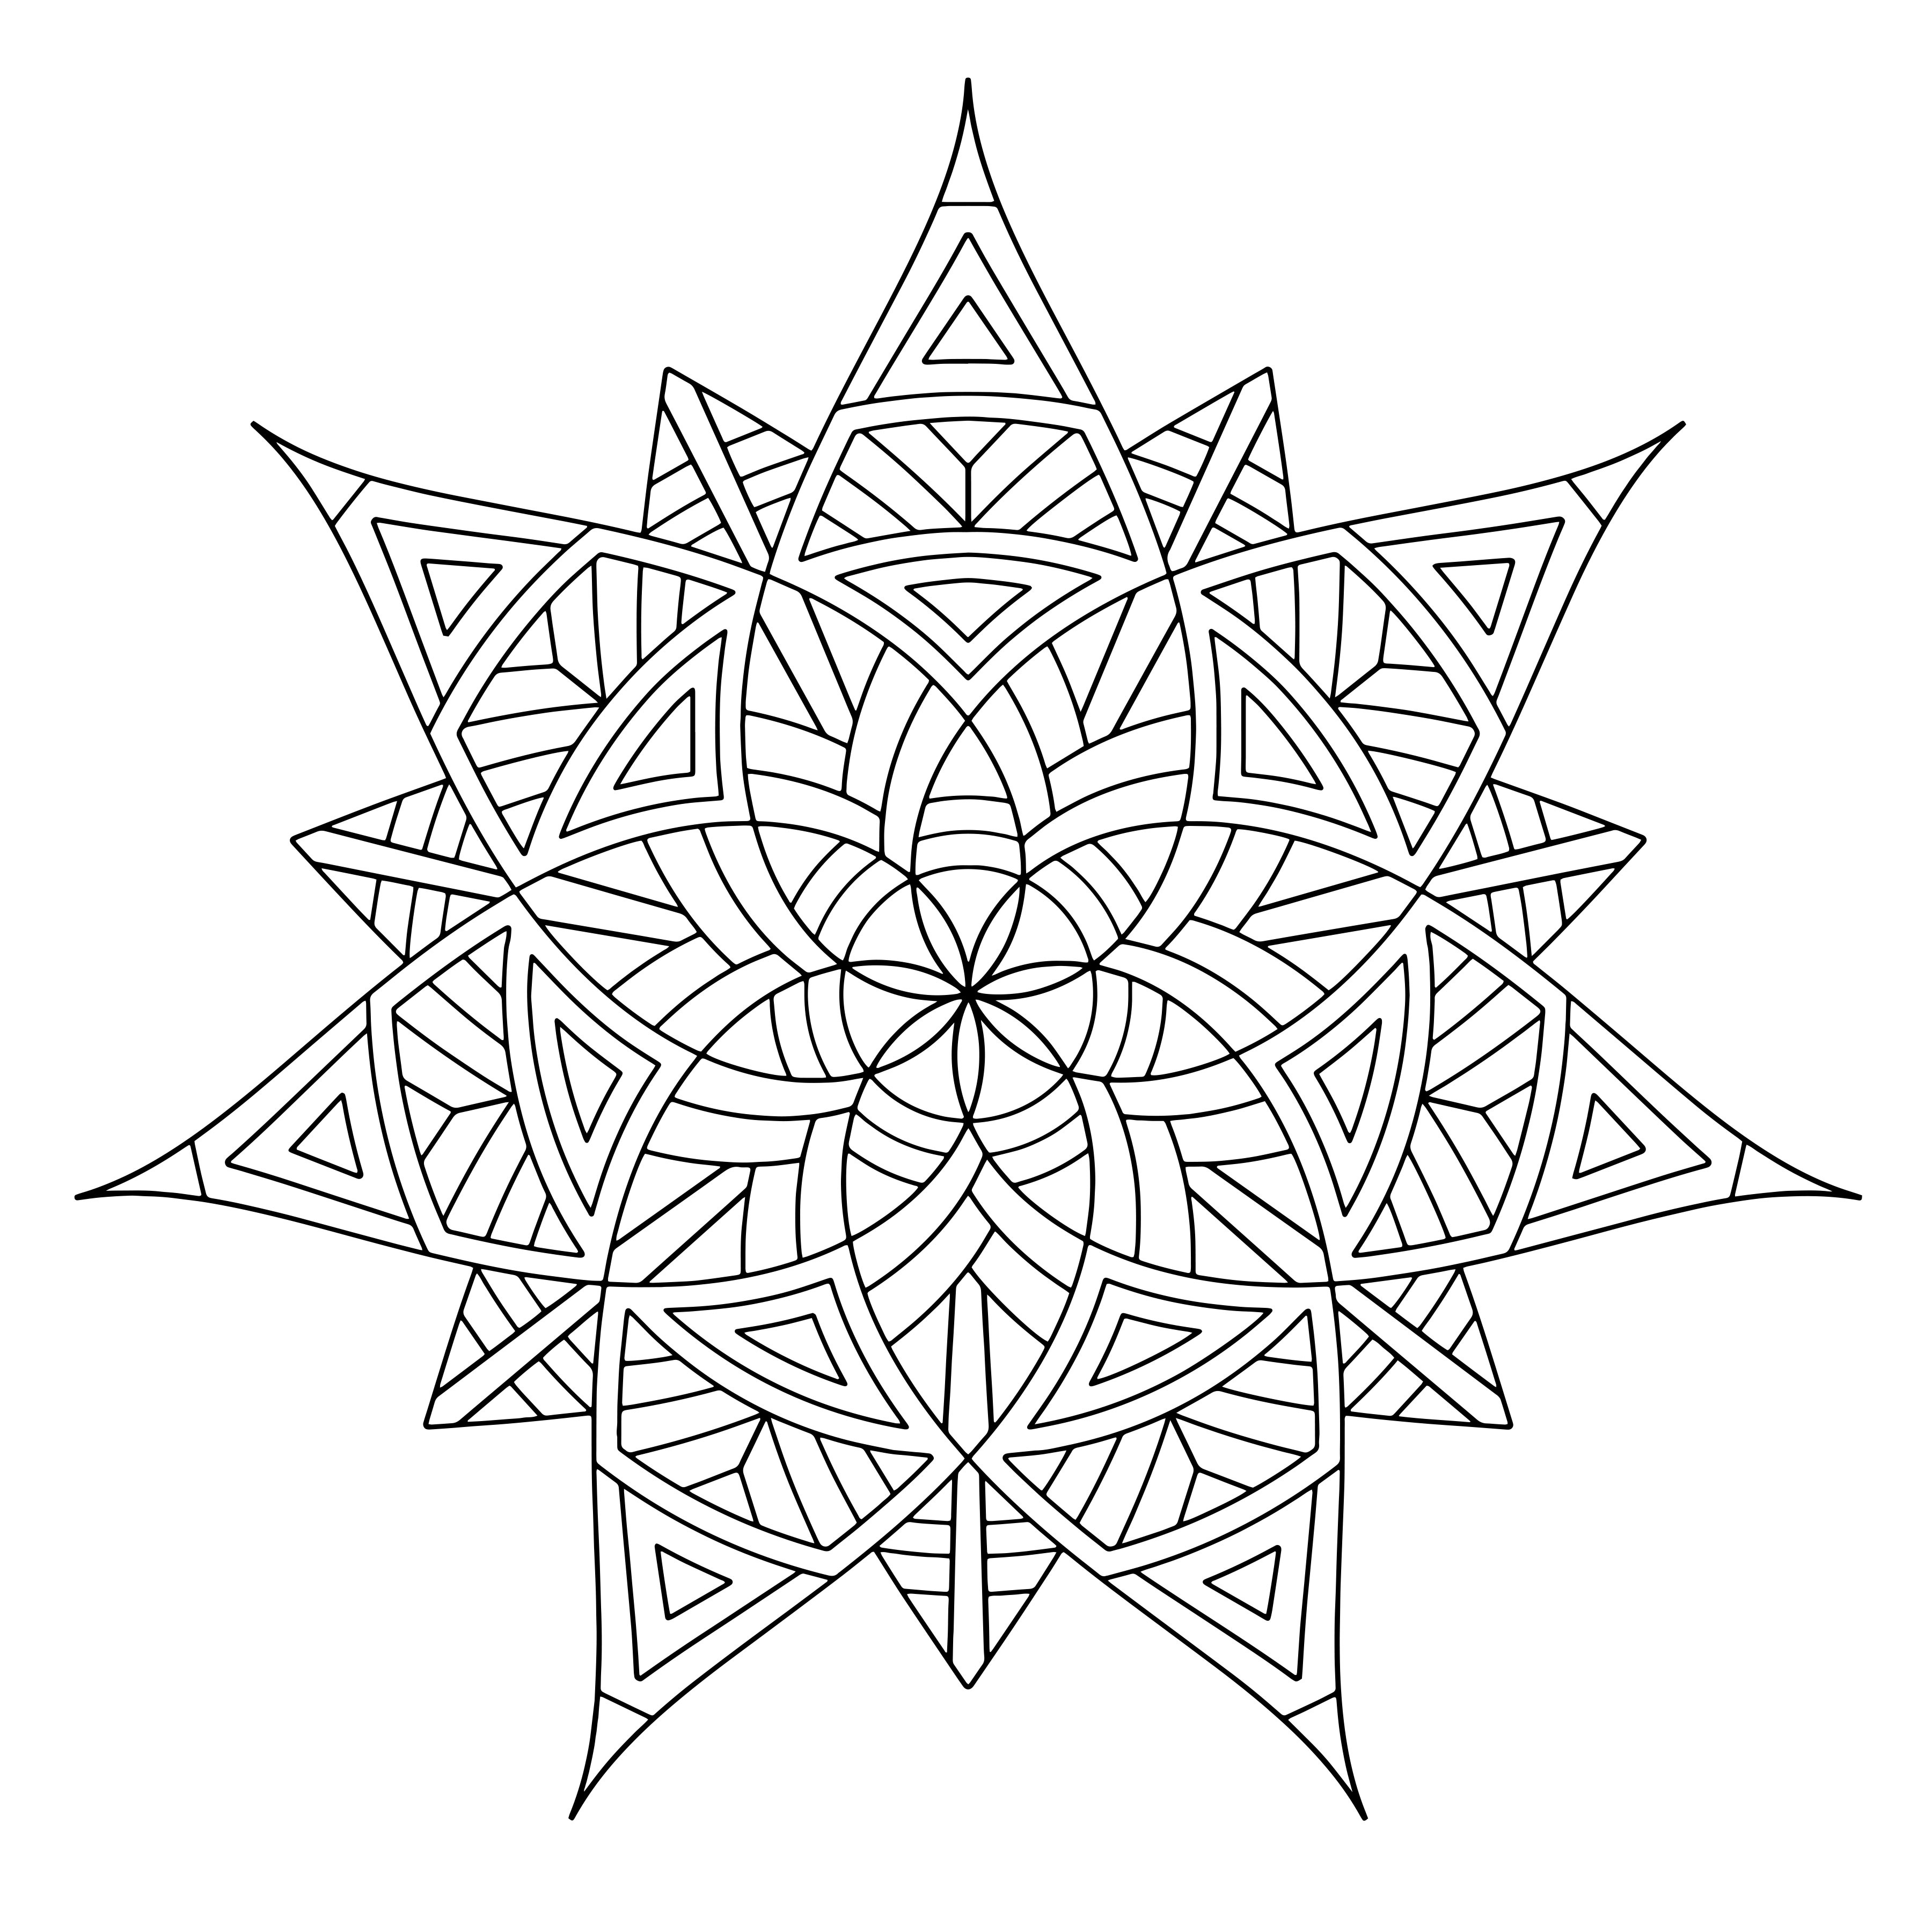 coloring pages designs geometric drawing designs at getdrawings free download designs coloring pages